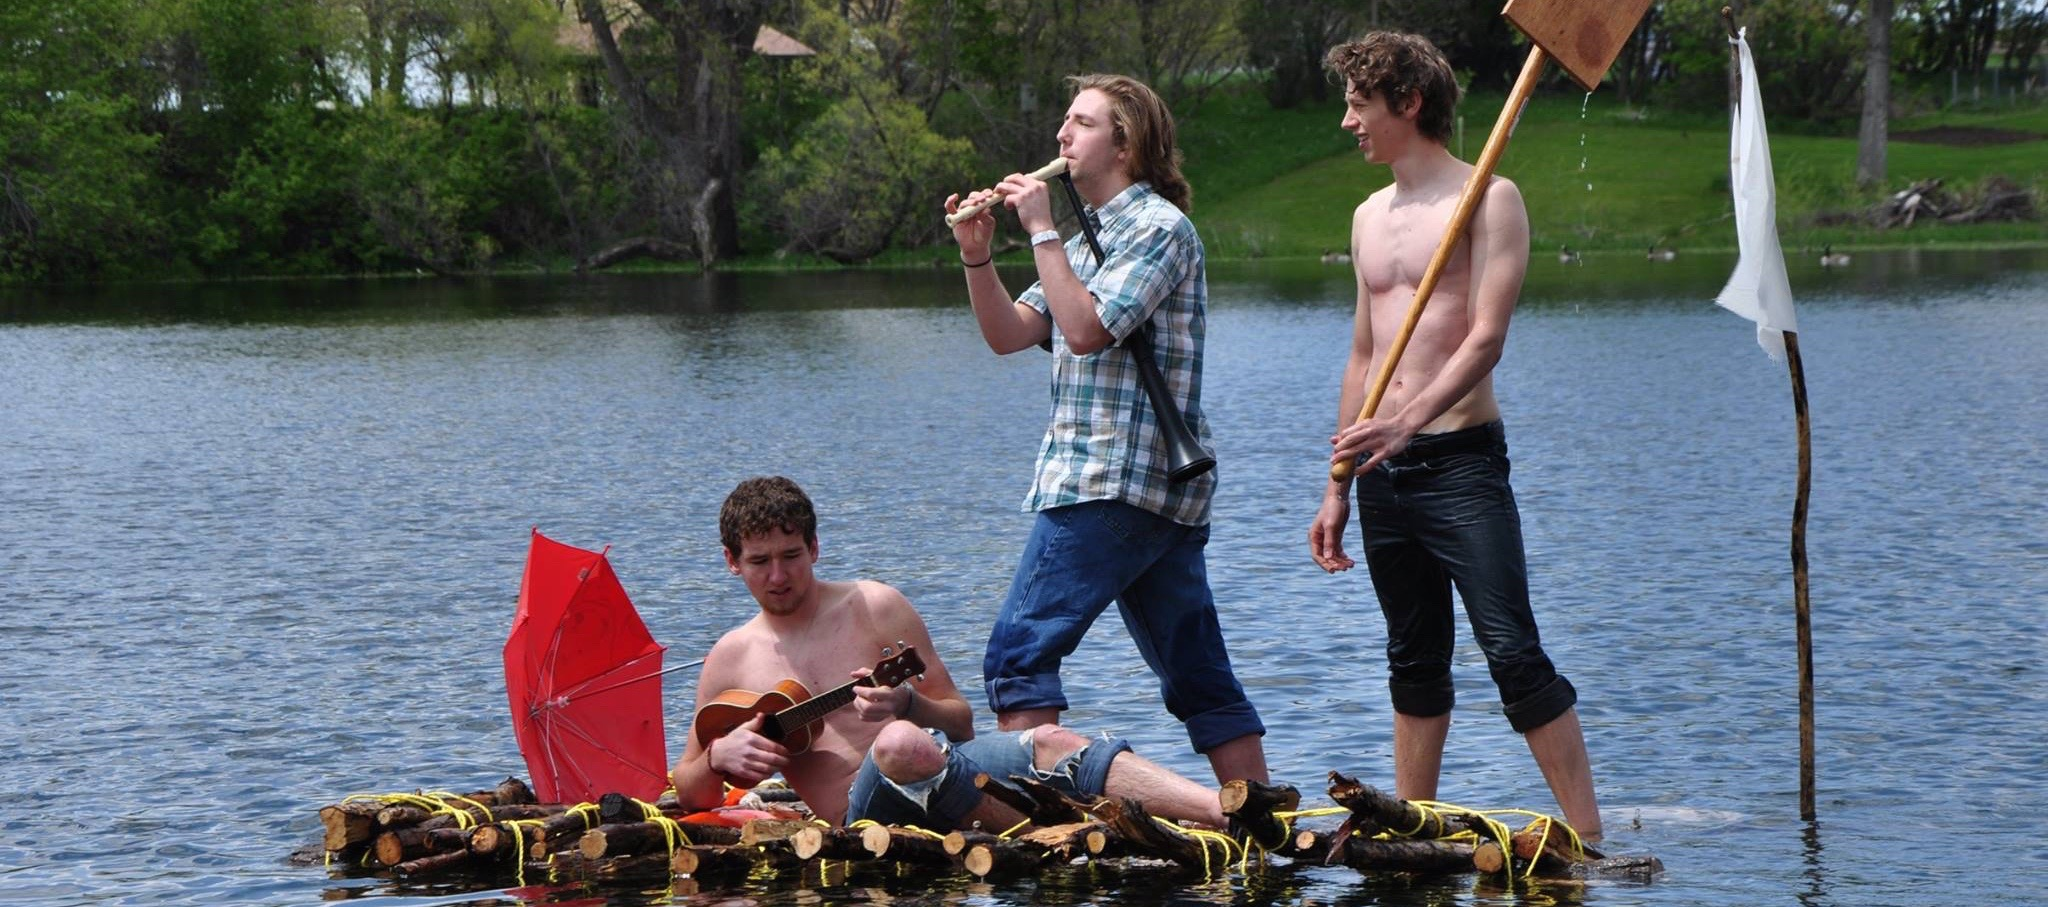 """Freshman students Seth Weirup, Daniel Seaman, and Levi Smith improvise Tom Sawyer Tuesday's themesong while floating down the """"MississippI."""""""